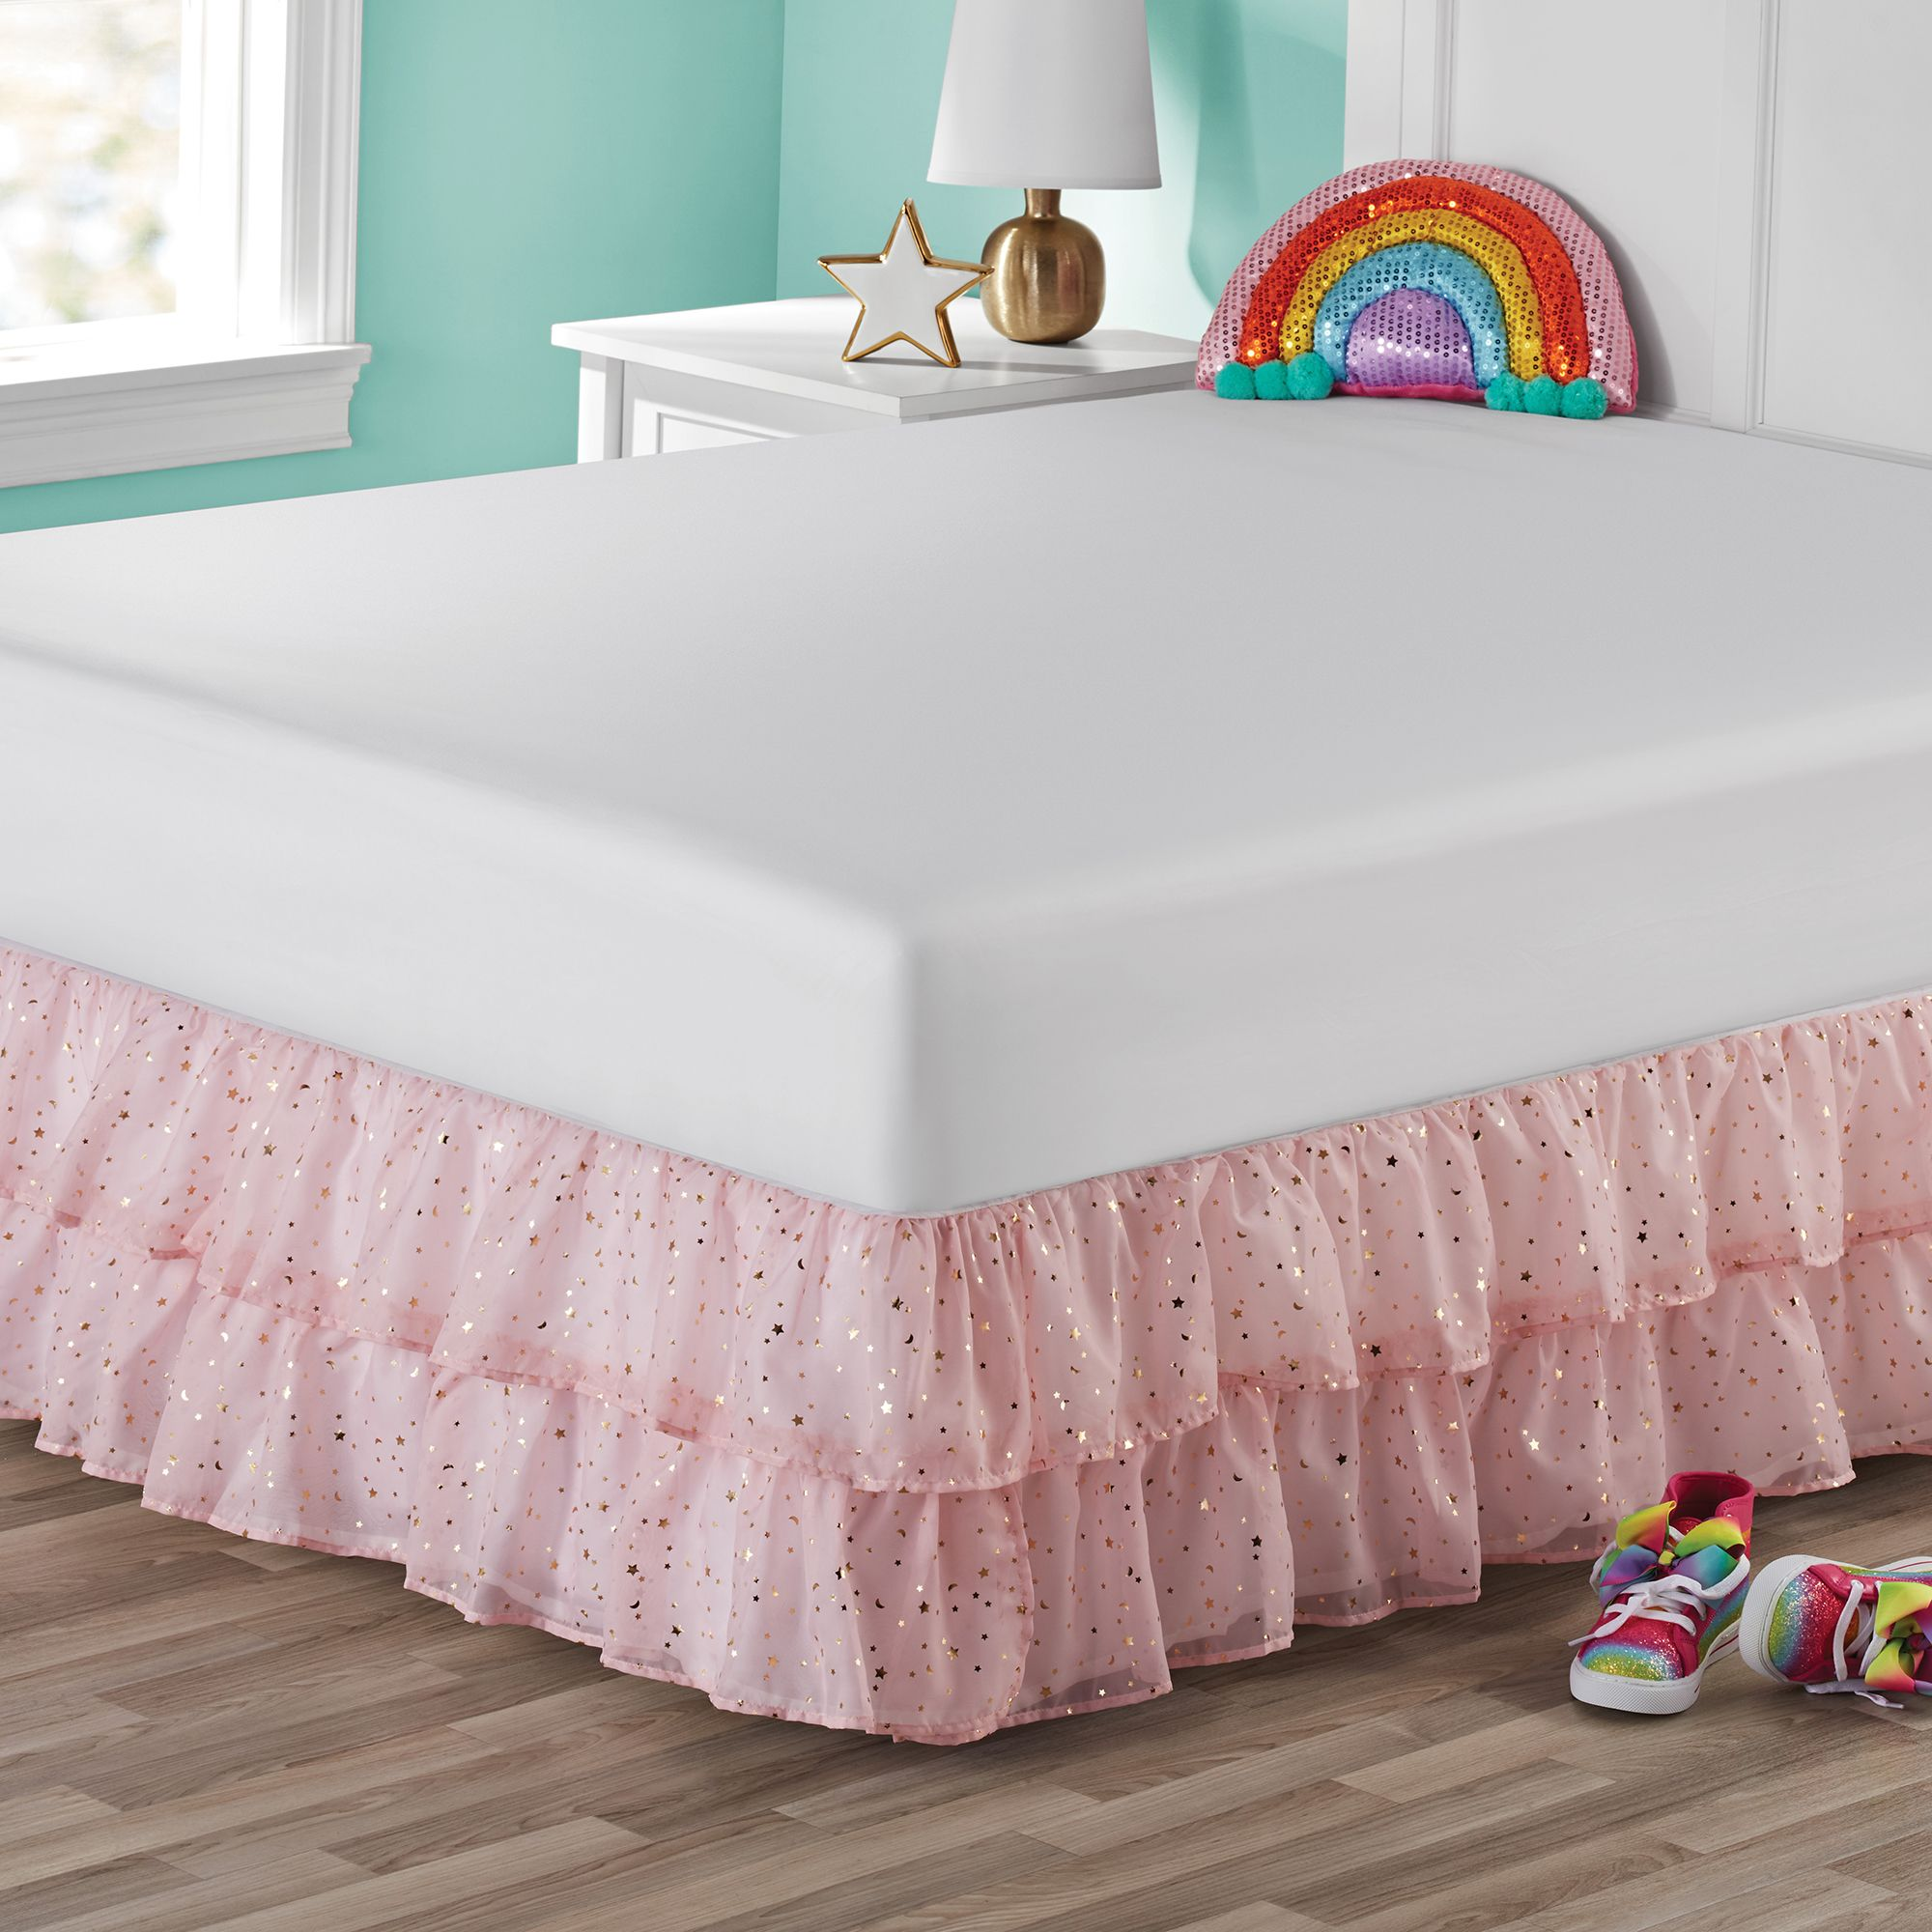 Your Zone Organza Two Tier Ruffle Bed Skirt Gold Metallic Printed Polar Pink Twin Walmart Com Ruffle Bedding Bedskirt Ruffle Bed Skirts Bedskirts for twin beds